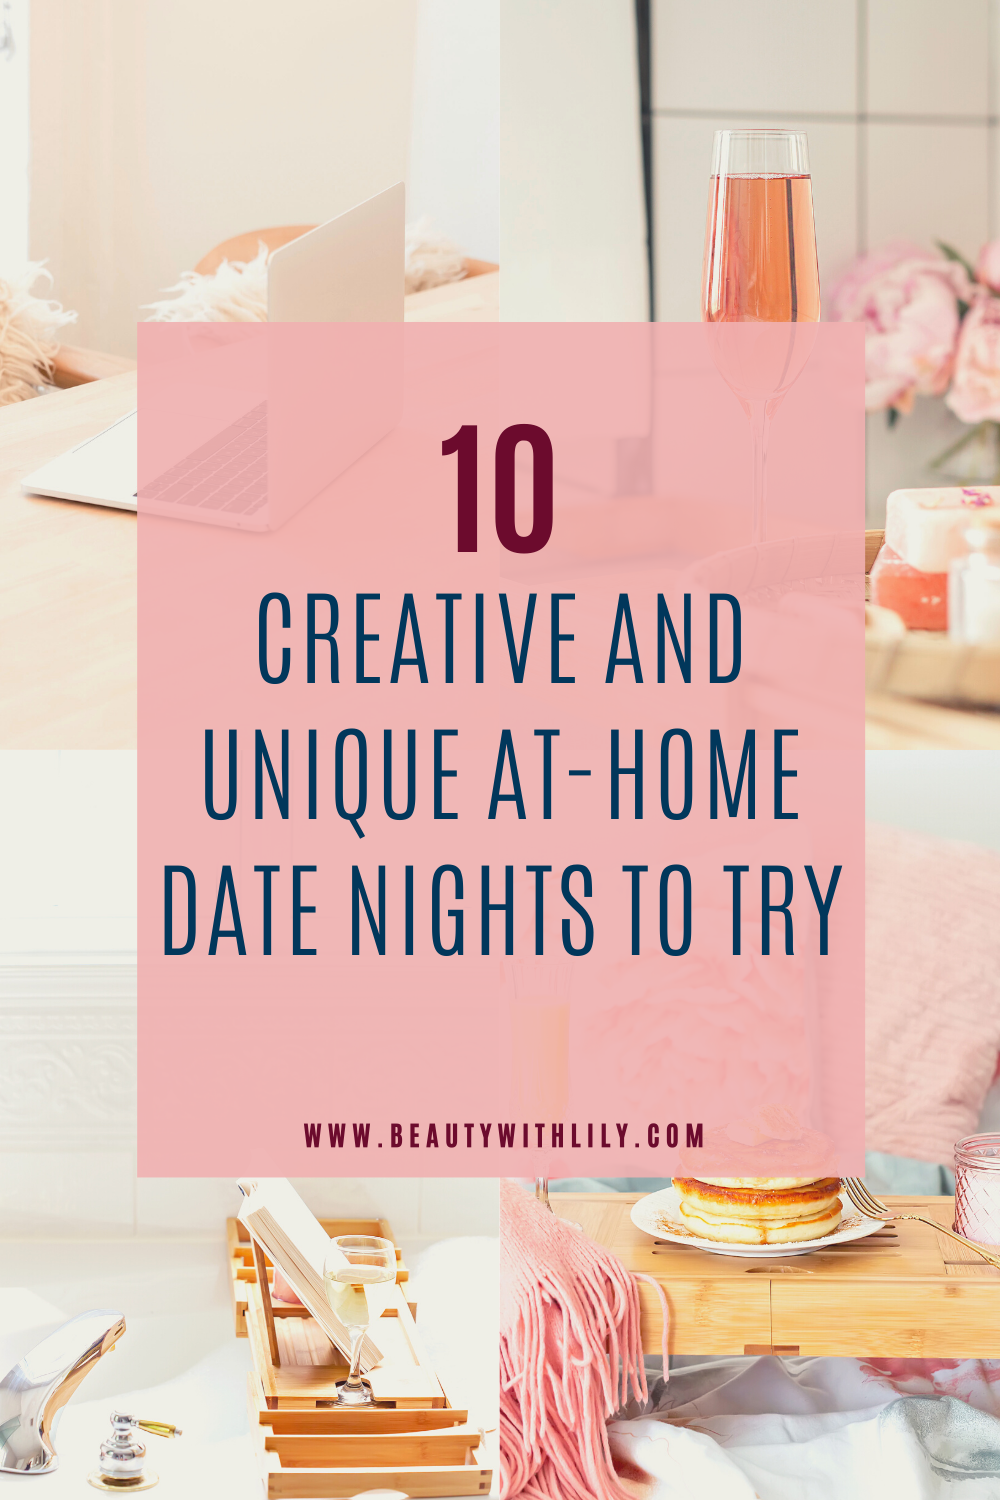 10 At-Home Date Nights To Try // Date Night Ideas // Date Night In Ideas // Romantic Date Night Ideas // Fun Date Night Ideas // Inexpensive Date Night Ideas // Cheap Date Night Ideas // Date Night Ideas At Home | Beauty With Lily #athomedatenights #datenight #stayhomestaysafe